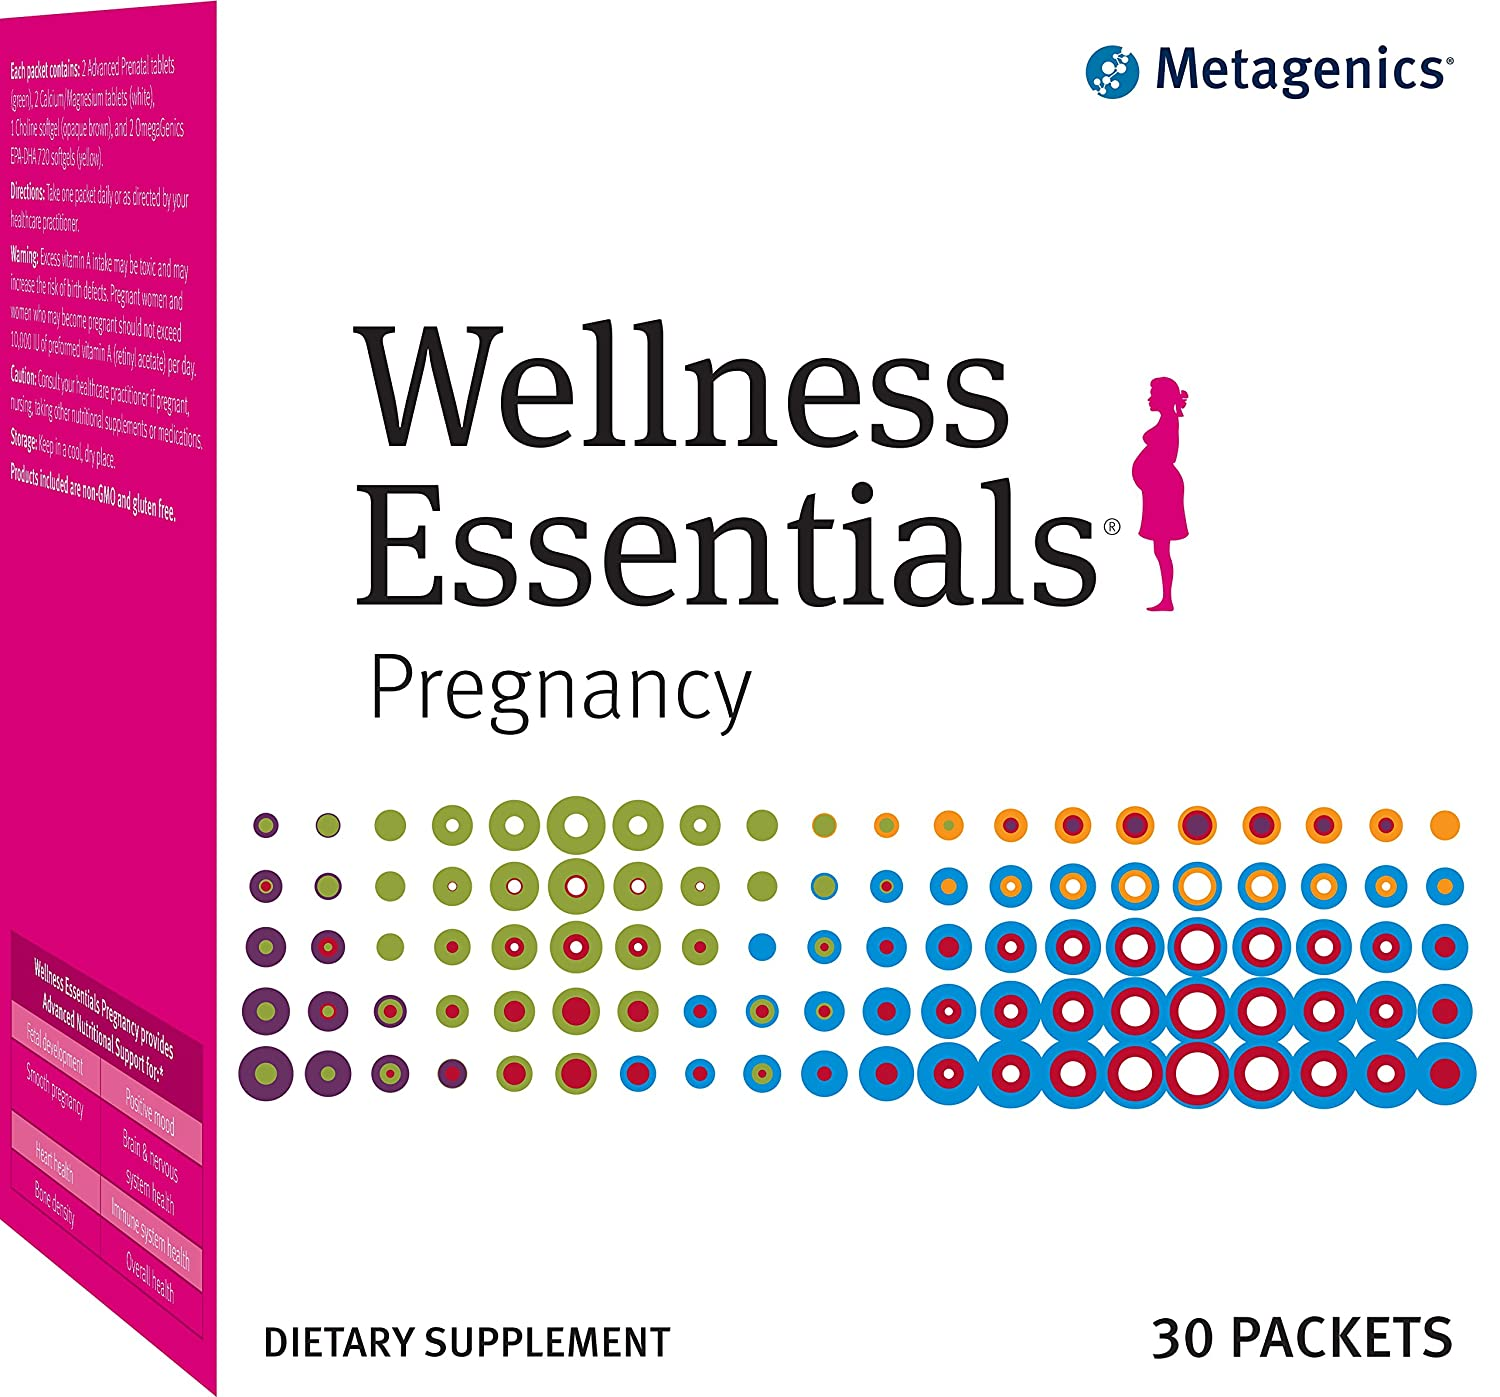 Metagenics – Wellness Essentials Pregnancy, 30 Count